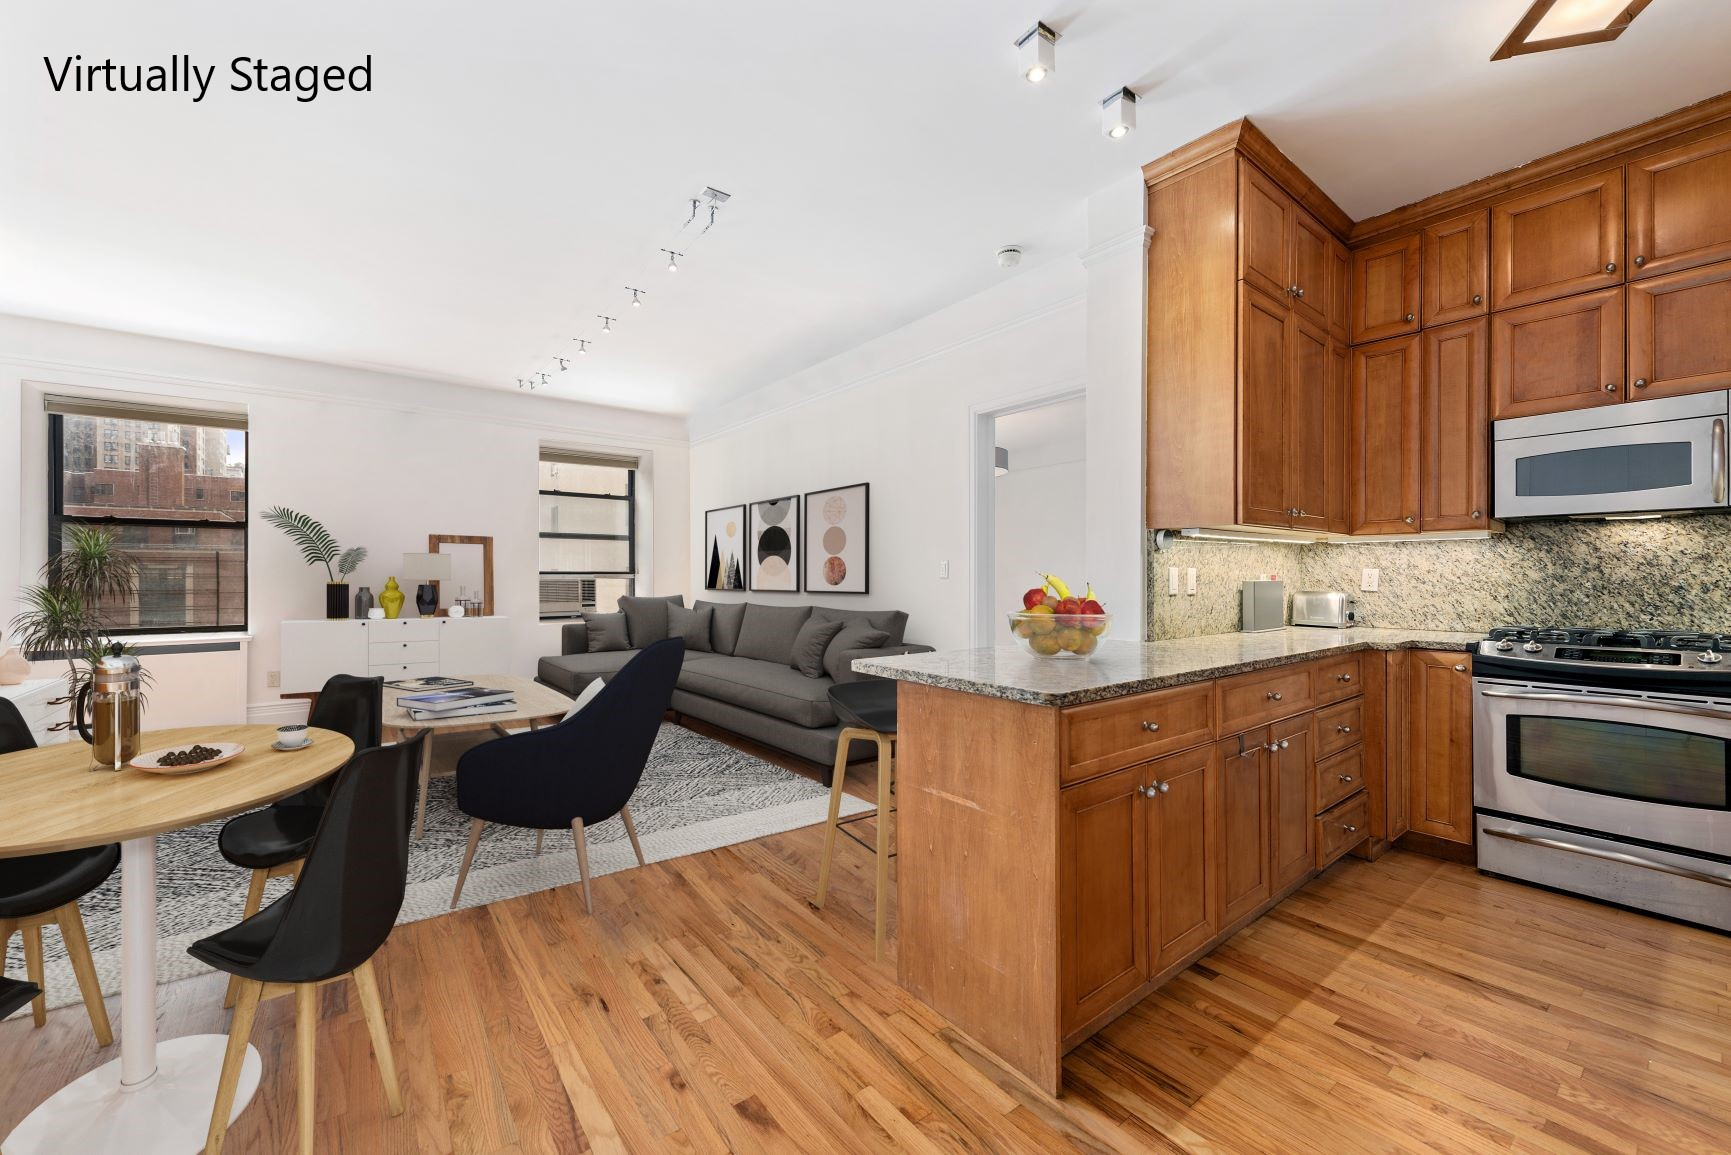 310 West 97th Street,New York,New York,New York,United States 10025,2 Bedrooms Bedrooms,2 BathroomsBathrooms,Condo,West 97th Street,1098